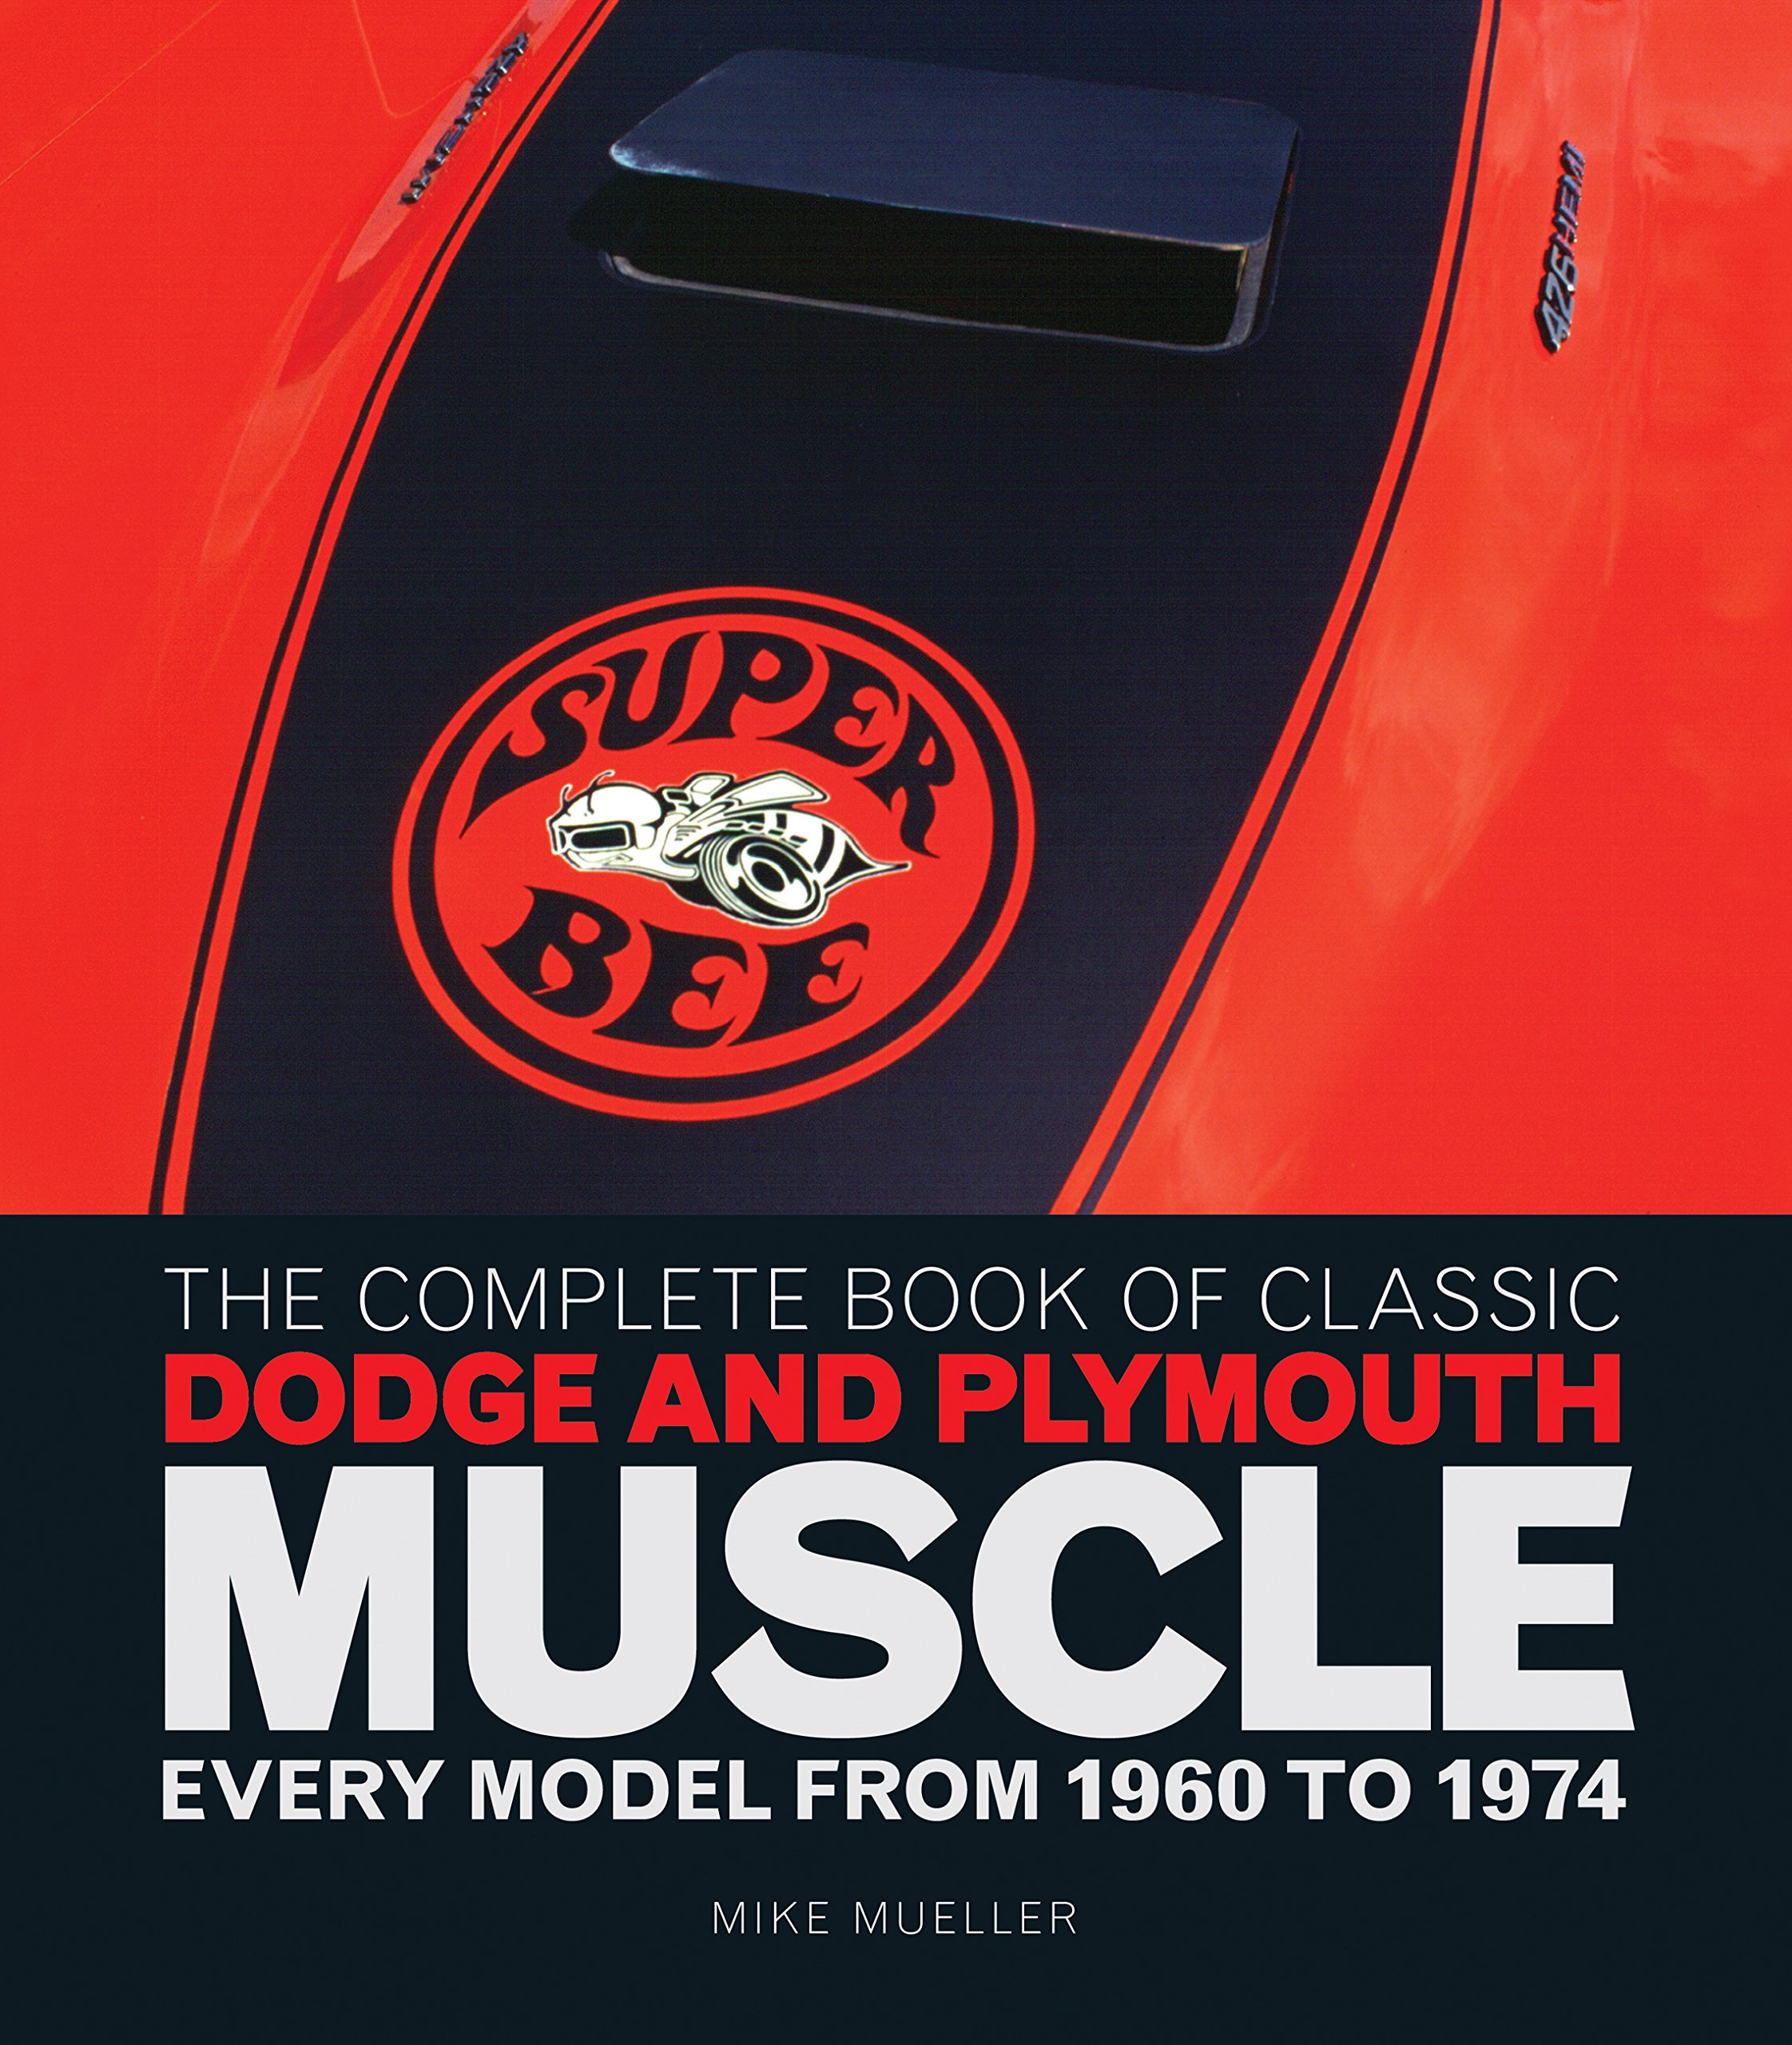 The Complete Book of Classic Dodge and Plymouth Muscle: Every Model from 1960 to 1974 (Complete Book Series) by Brand: Motorbooks (Image #1)